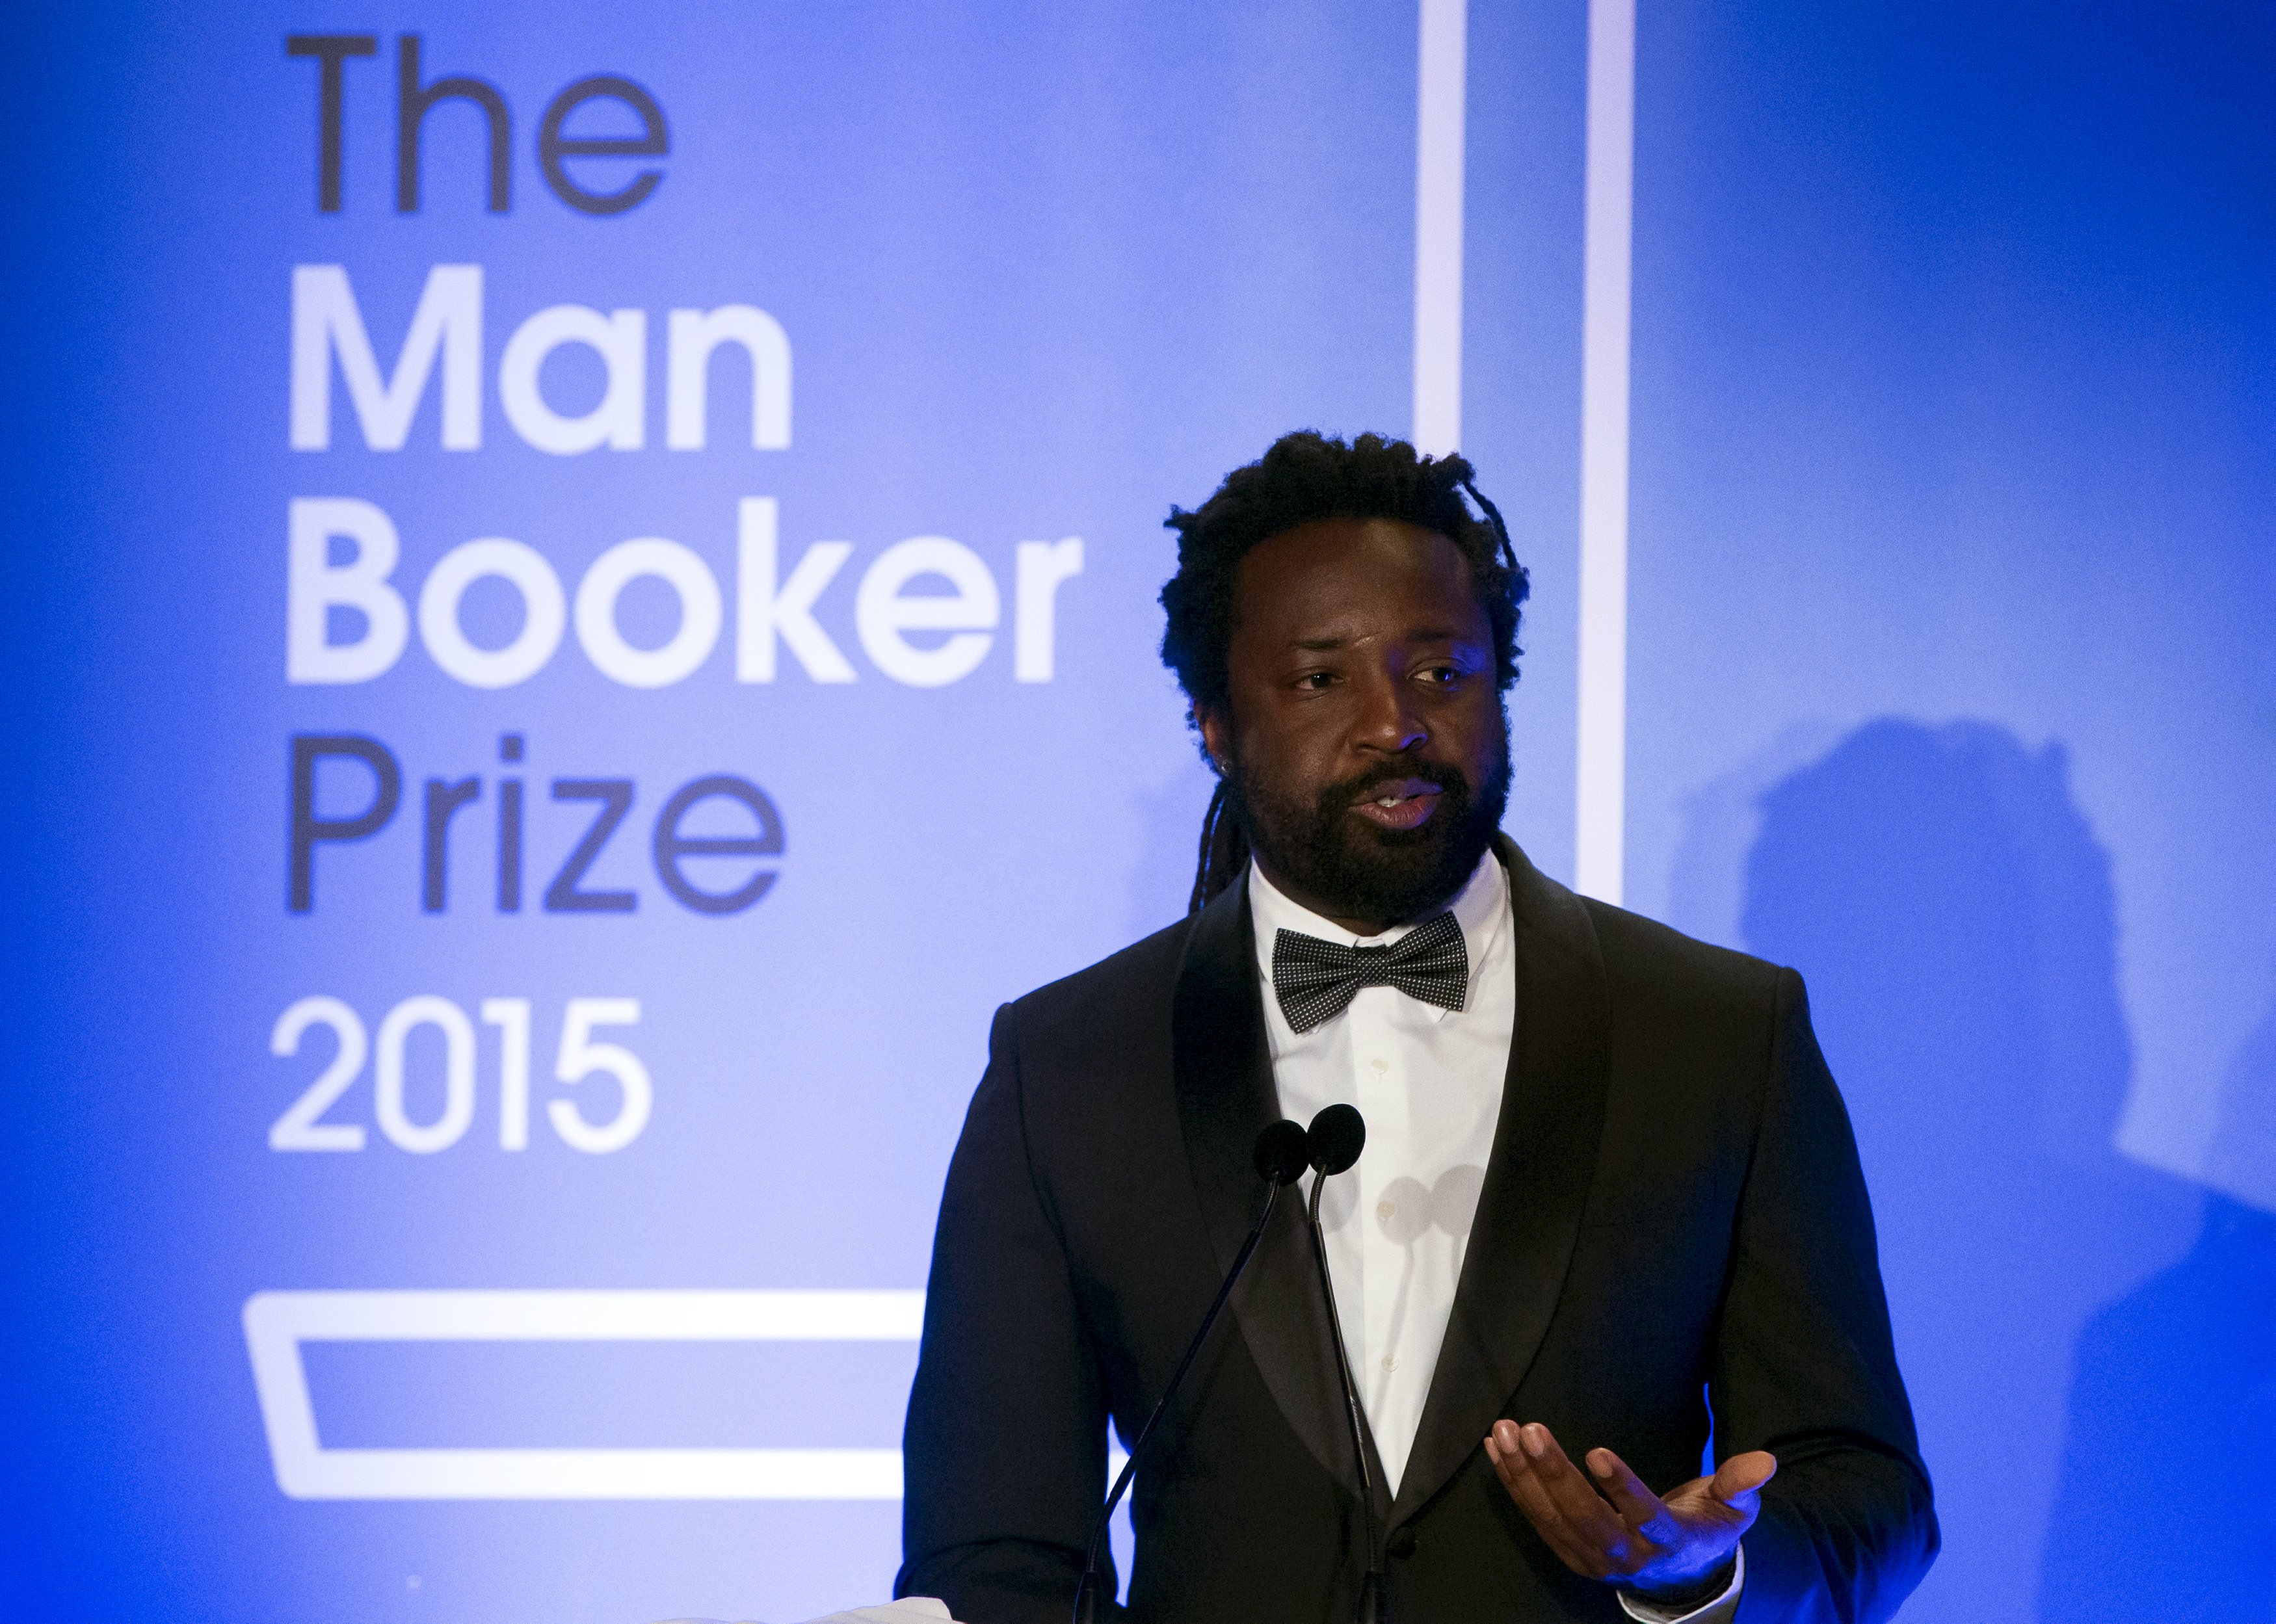 Author Marlon James winning author of  A Brief History of Seven Killings  speaks at the ceremony for the Man Booker Prize for Fiction 2015 on October 13, 2015 in London, England.